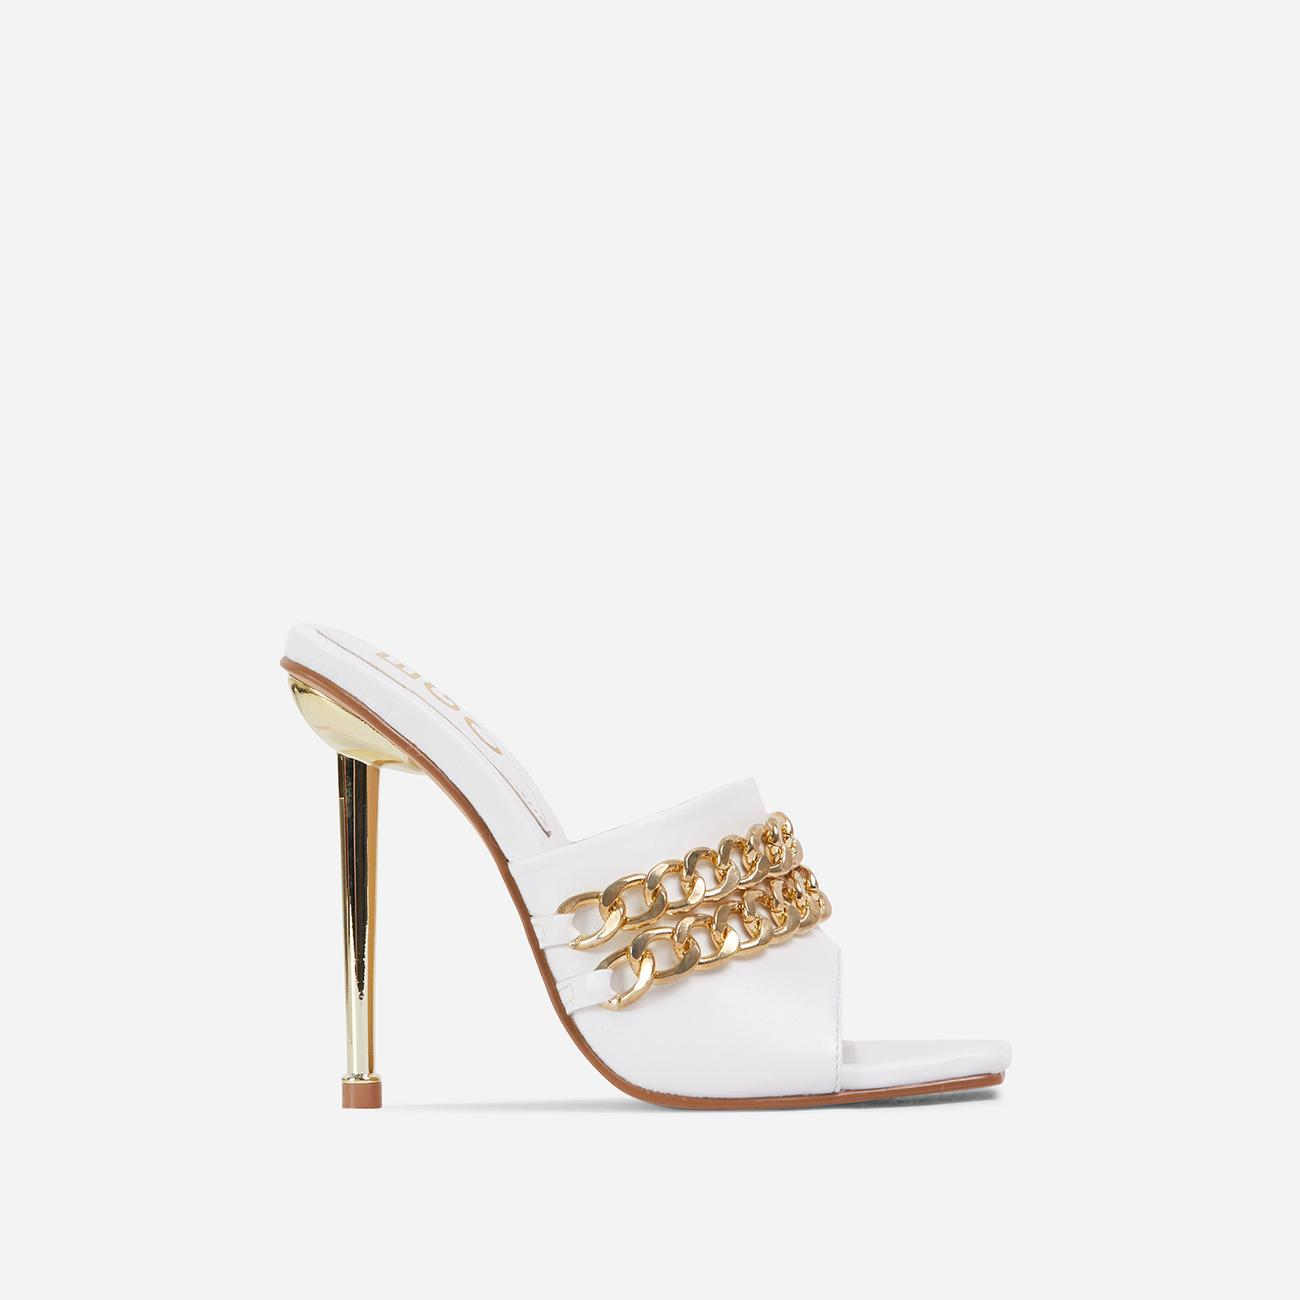 Fund Chain Detail Square Peep Toe Metallic Heel Mule In White Faux Leather Image 1